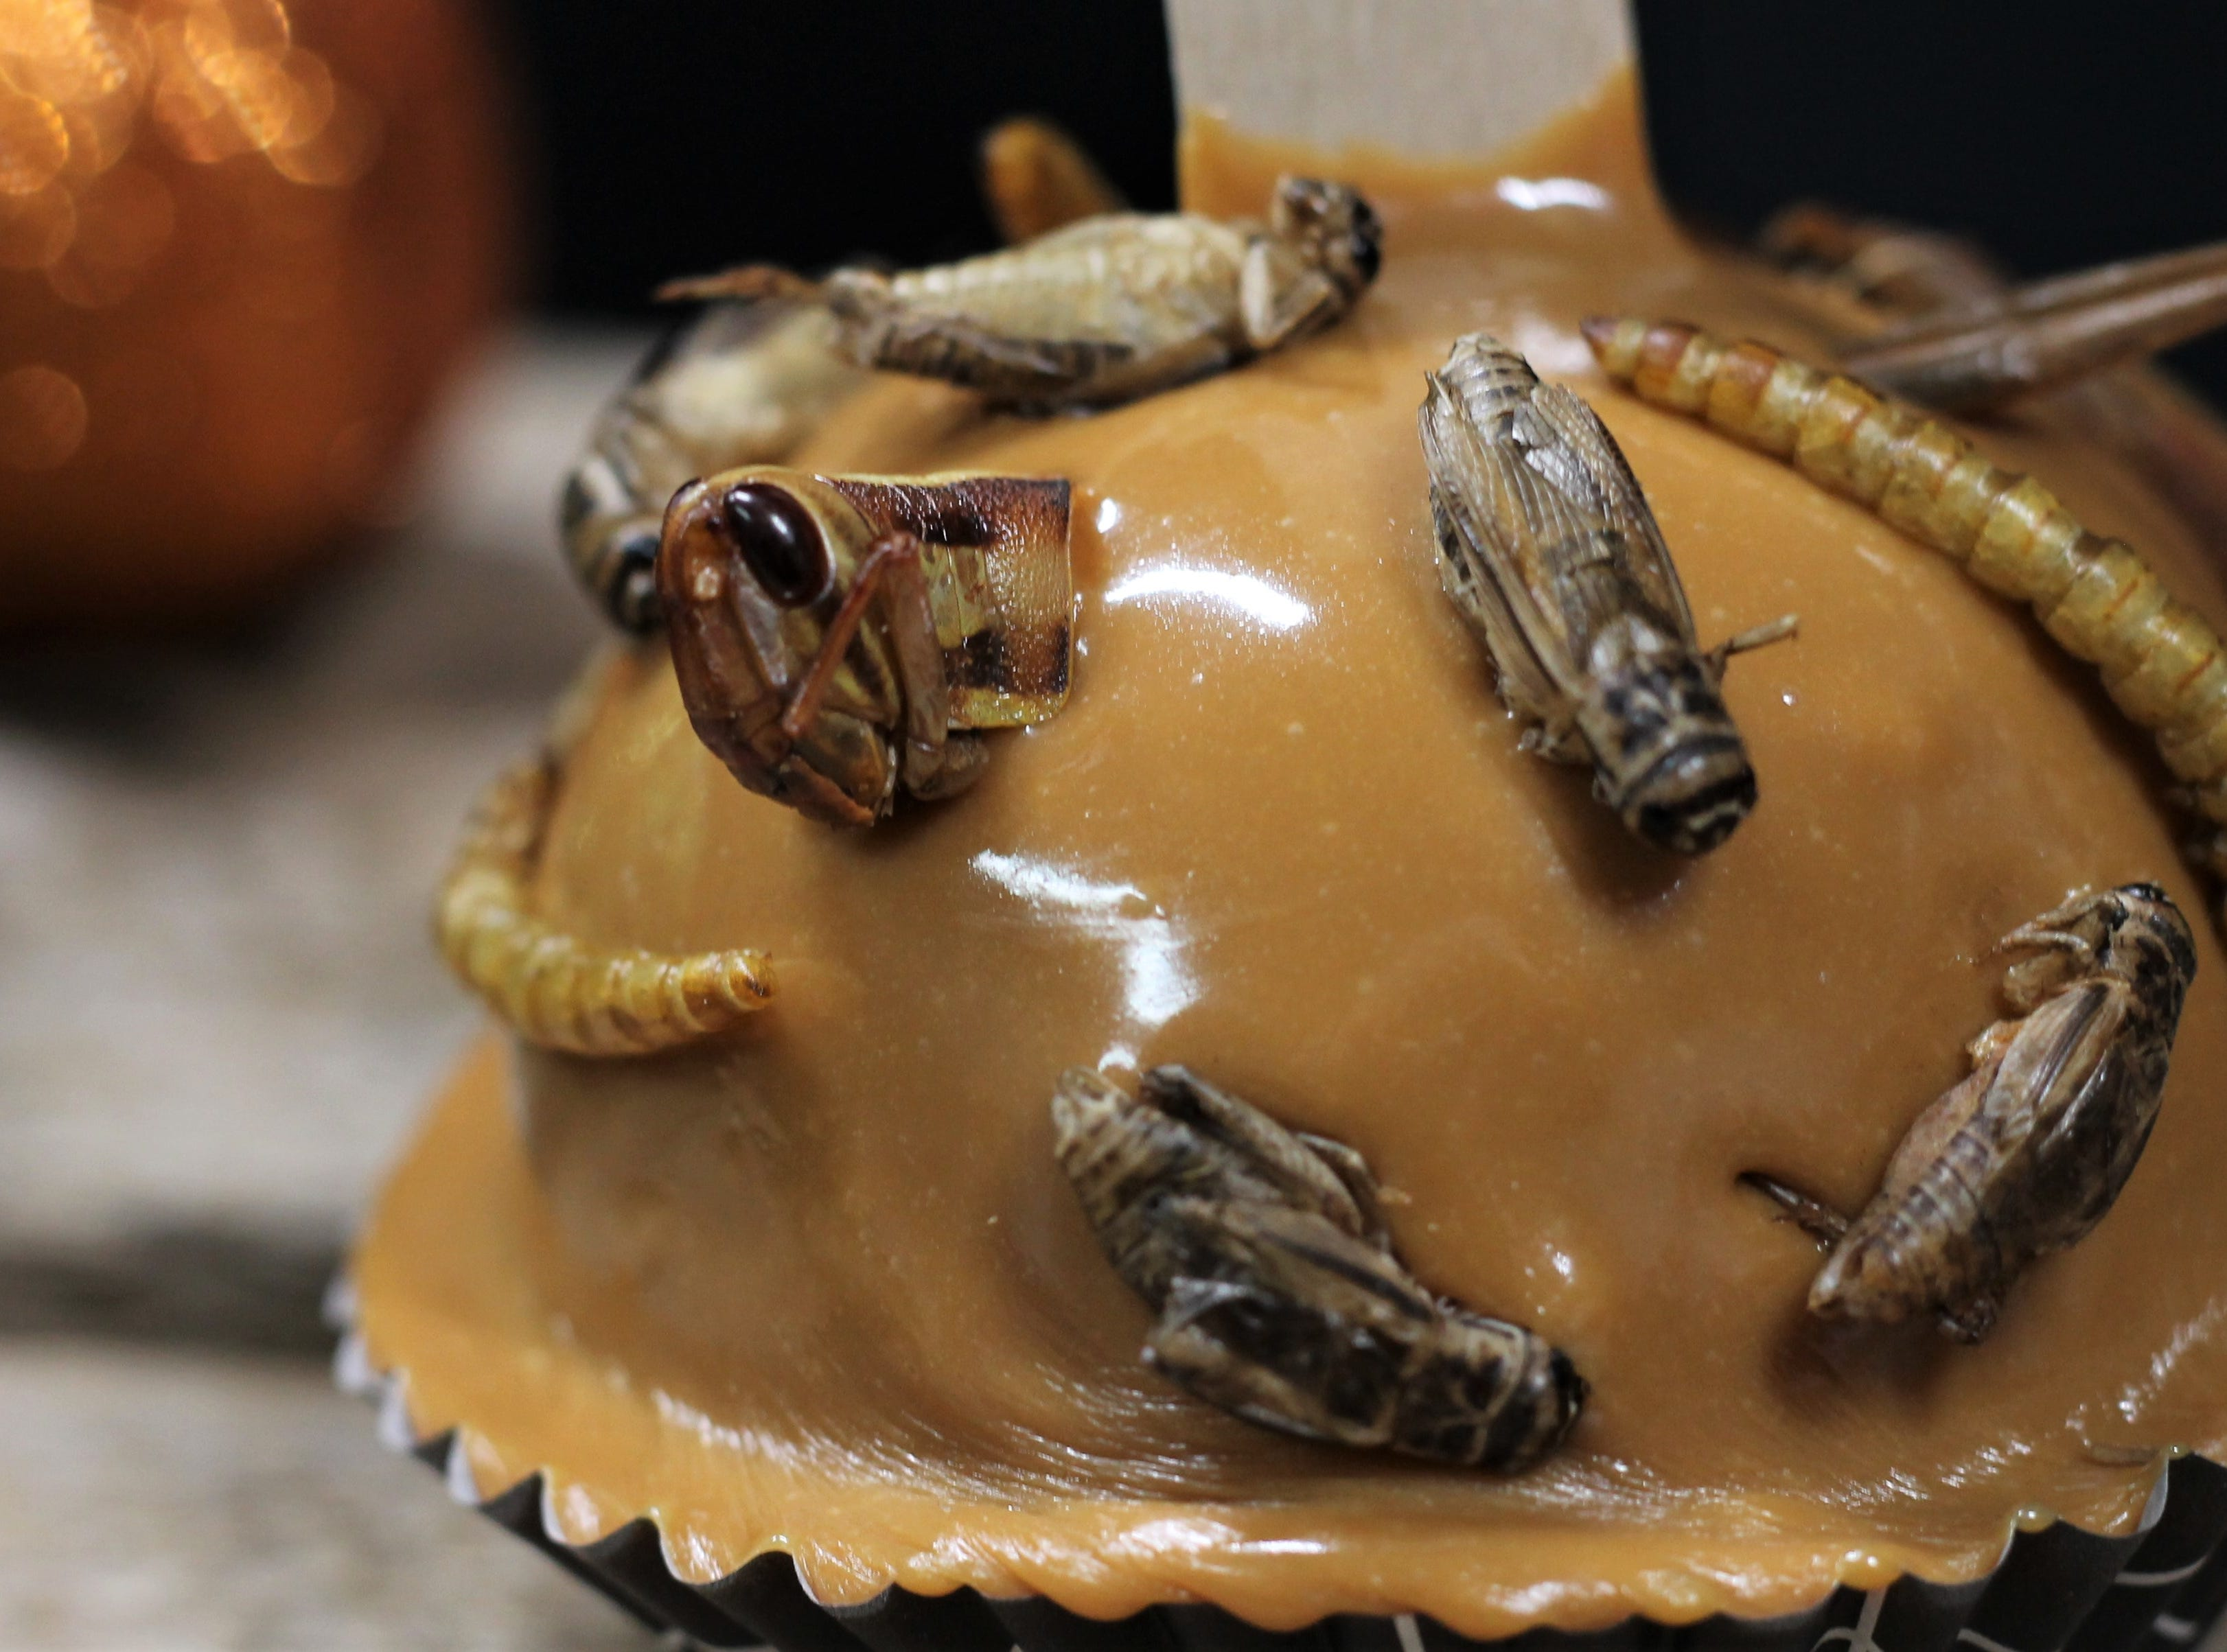 Add a few bugs to your caramel apples. Use larger insects like grasshoppers and crickets for a more dramatic effect.